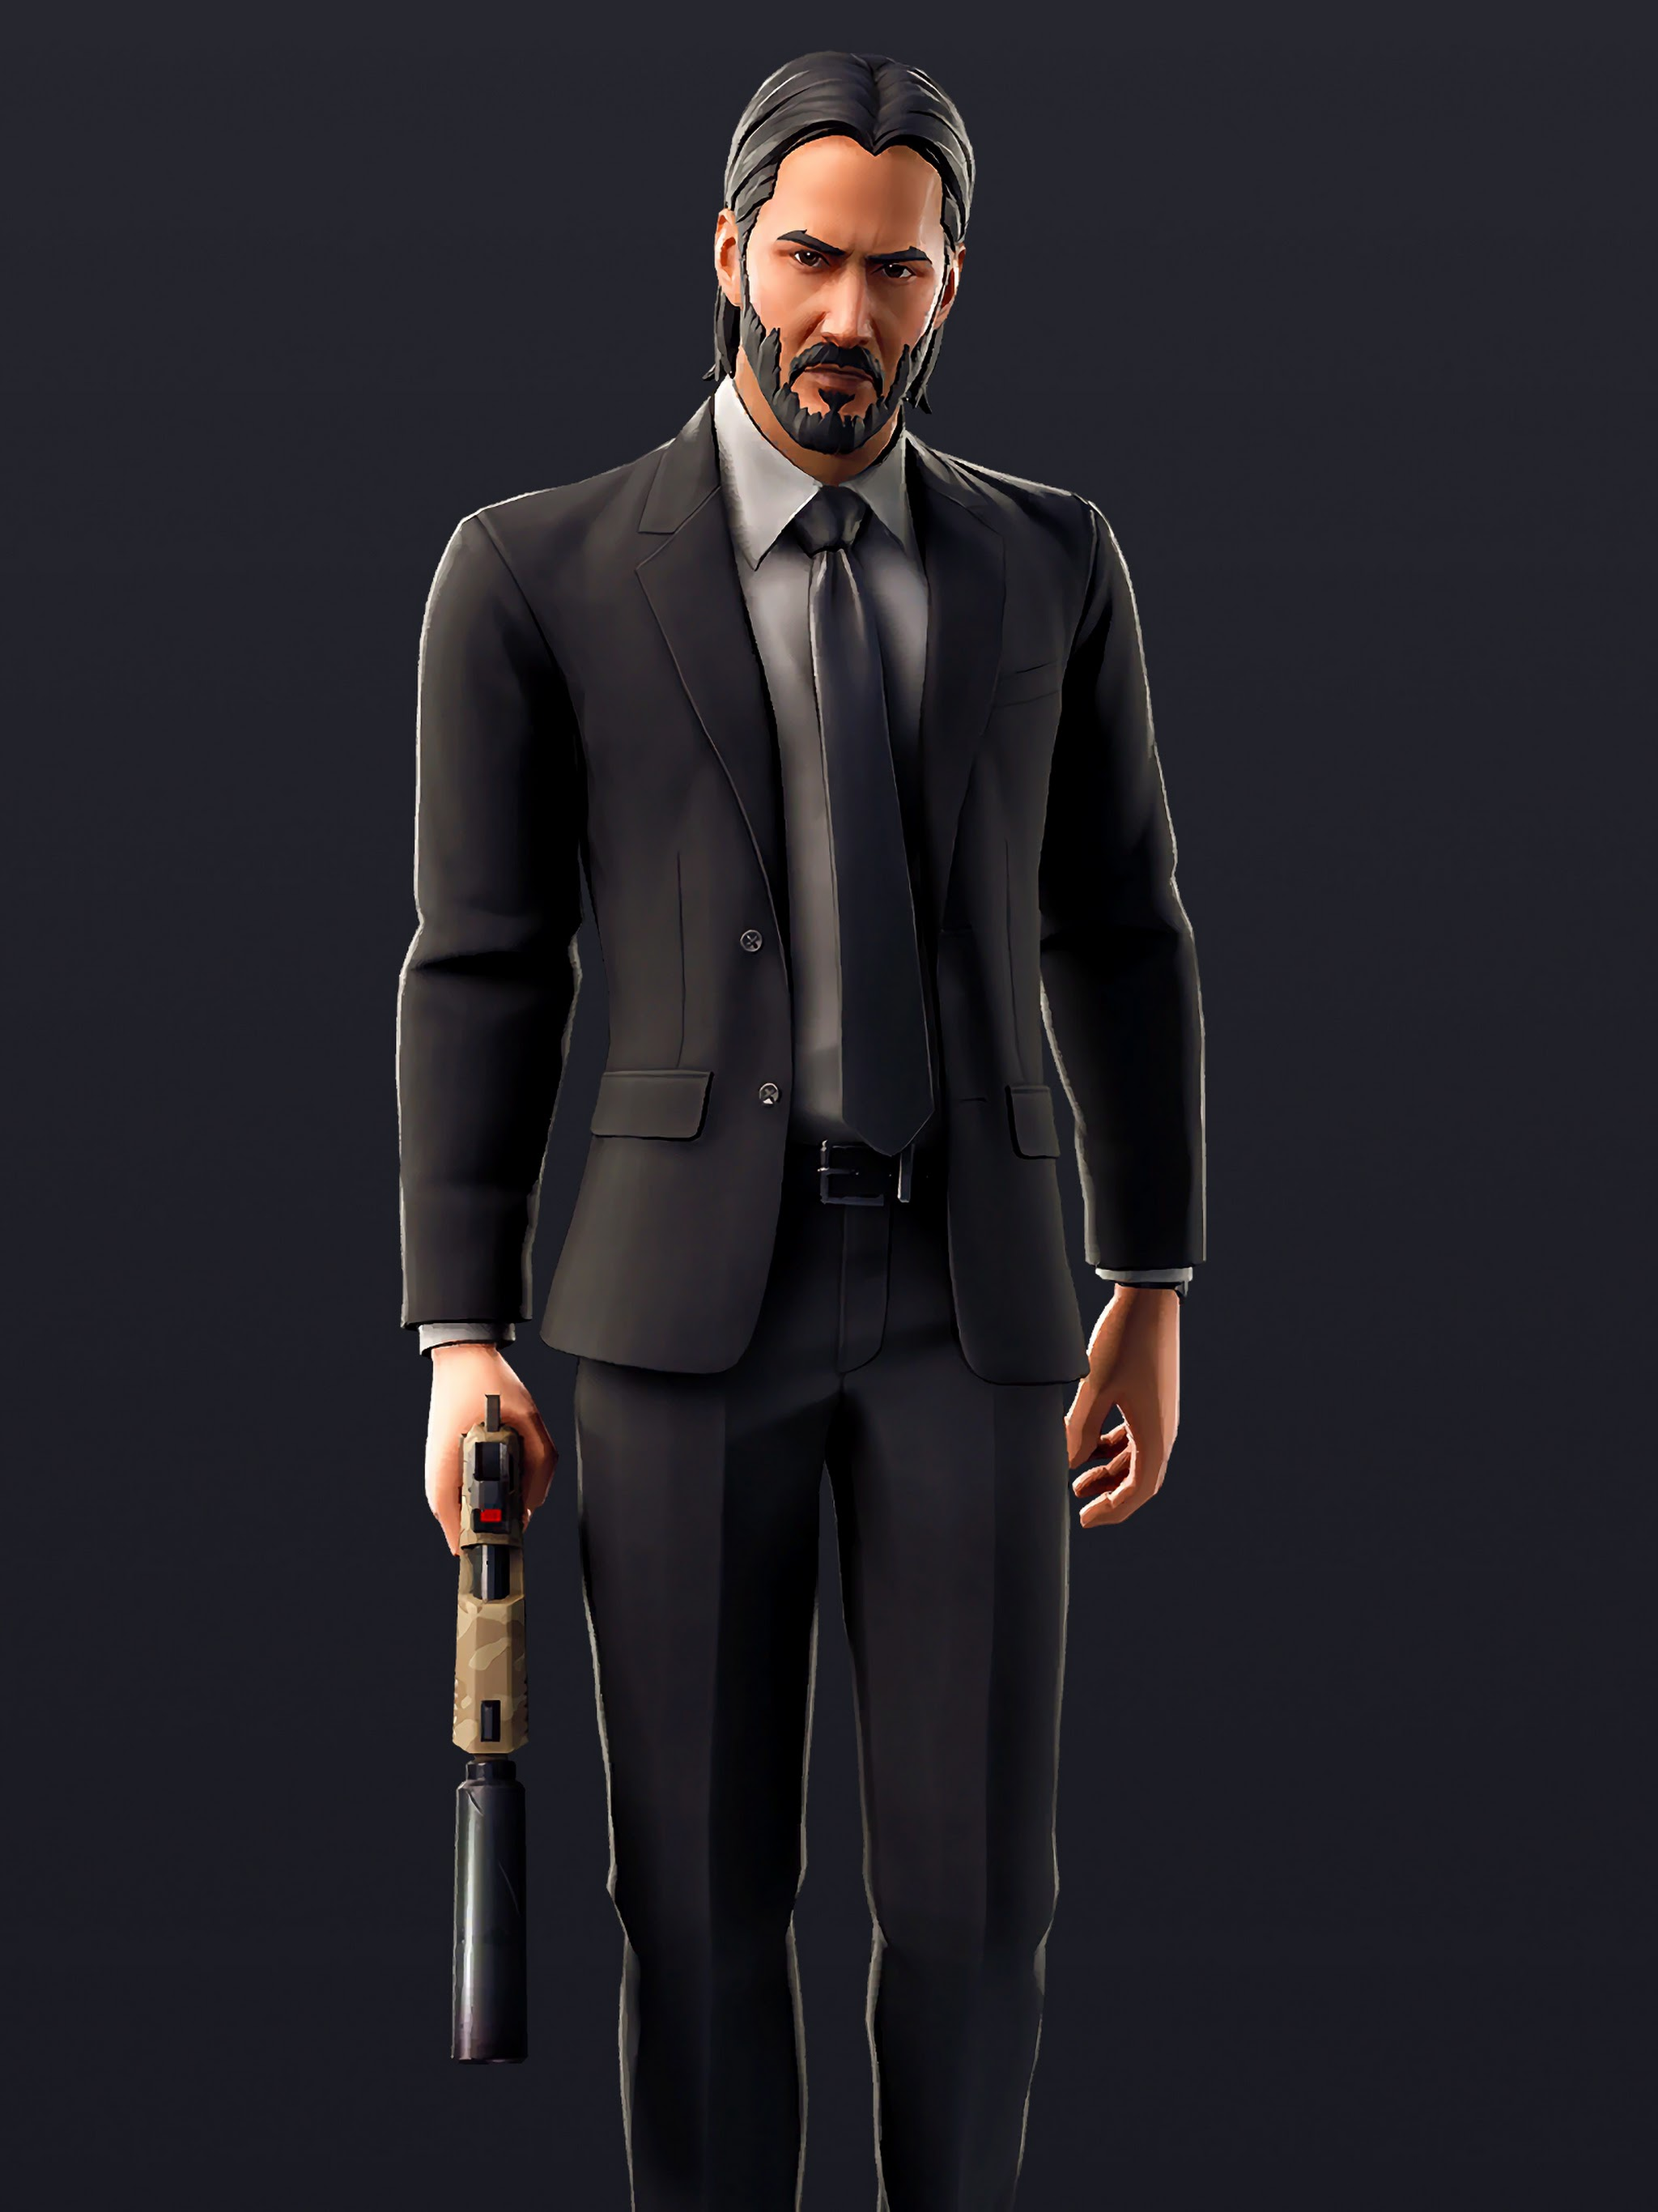 Fortnite John Wick Skin Outfit 4k Wallpaper 233